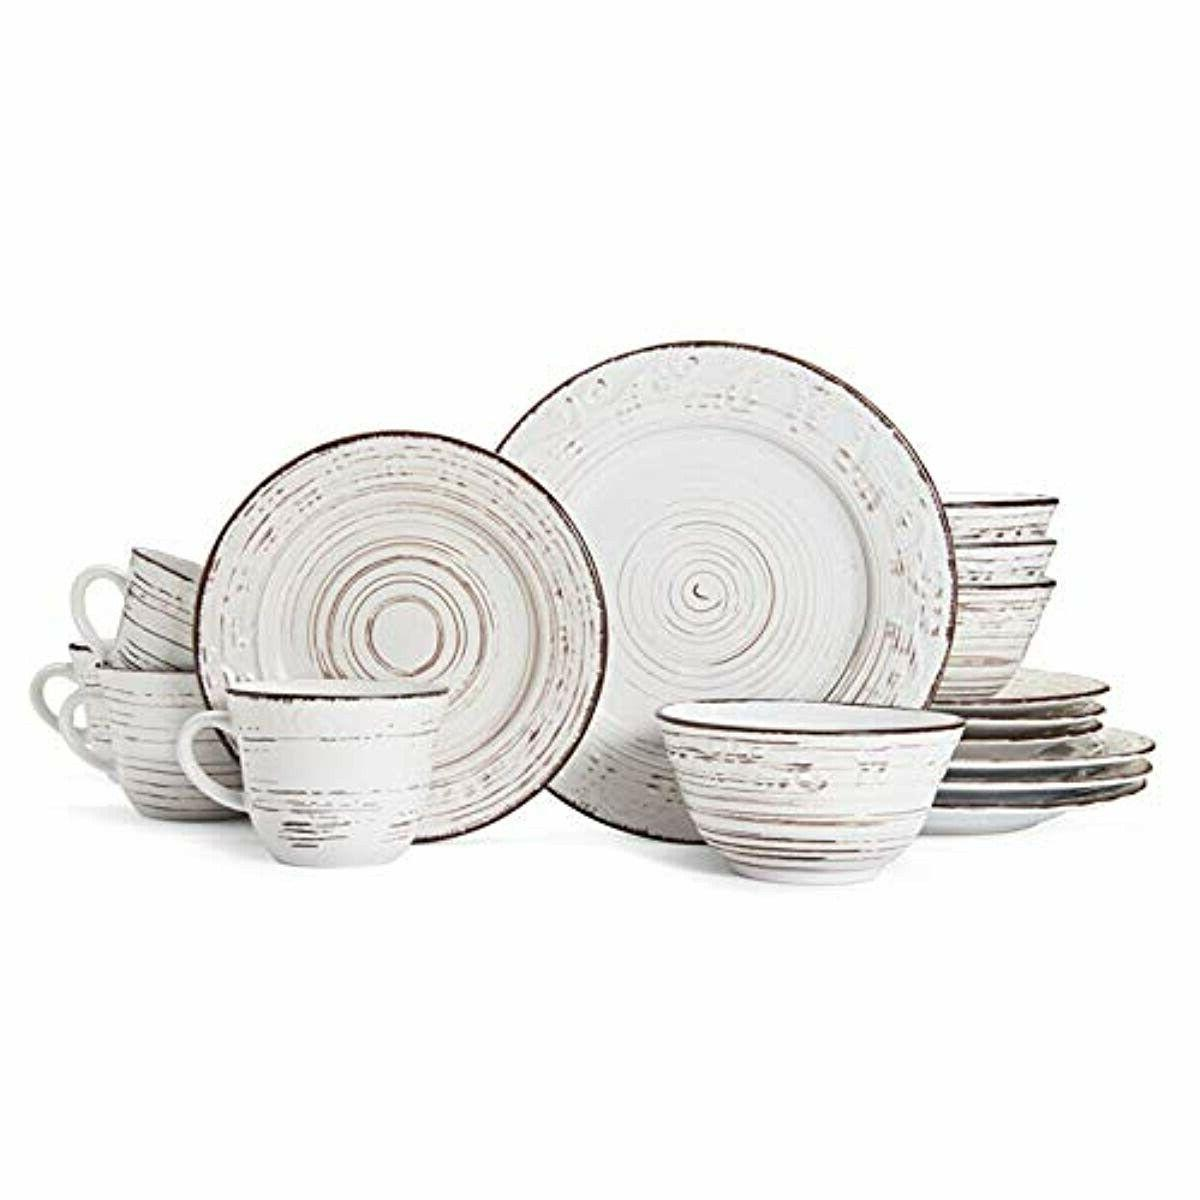 Pfaltzgraff 16-Piece Dinnerware Set, for